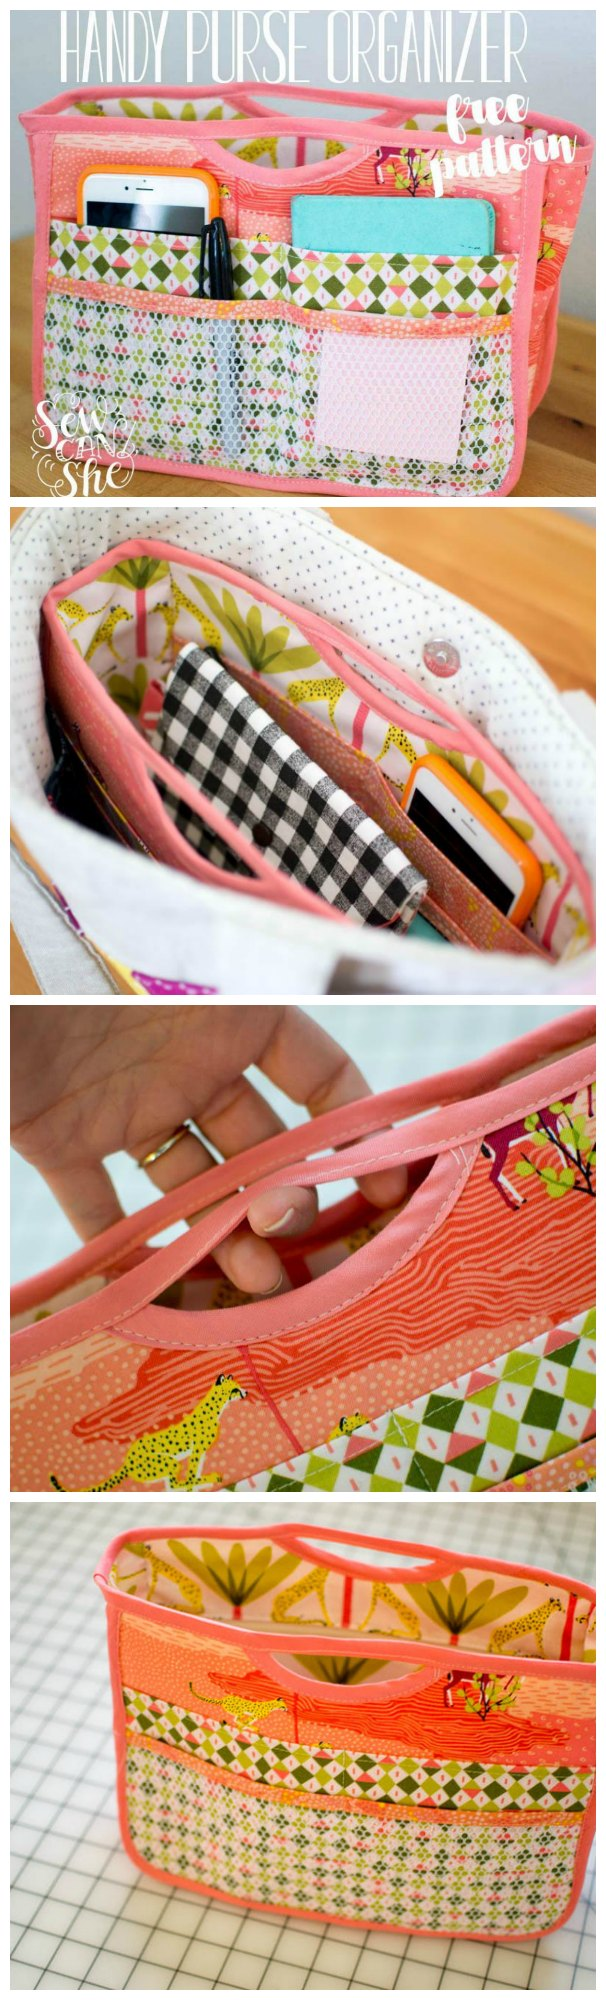 Free sewing pattern for this smart purse organizer.